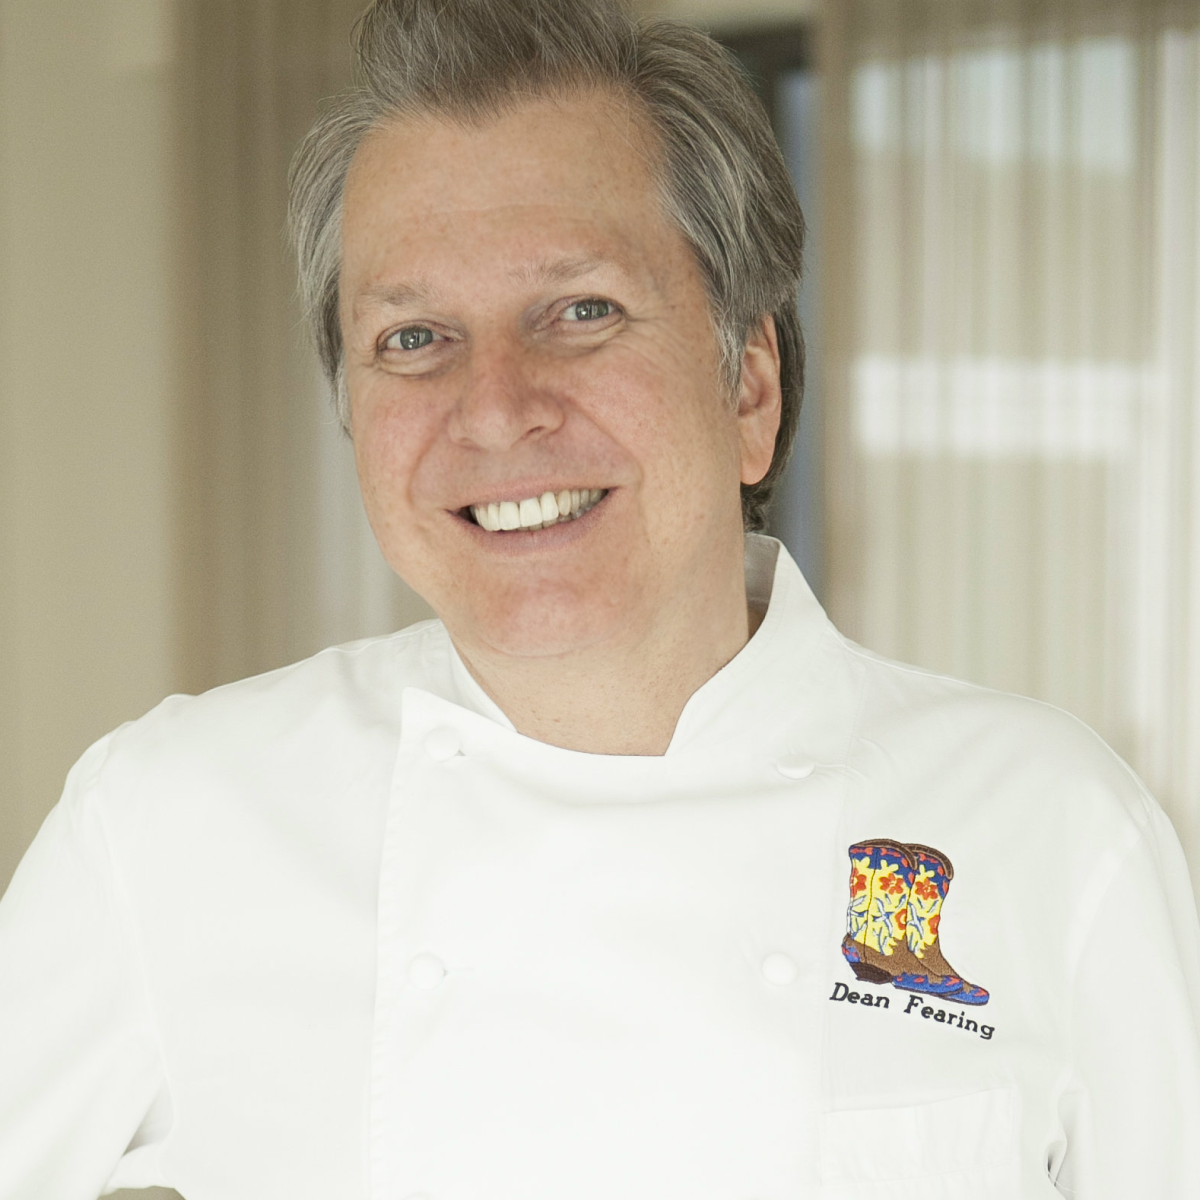 Dean Fearing of Fearing's Restaurant at the Ritz-Carlton, Dallas